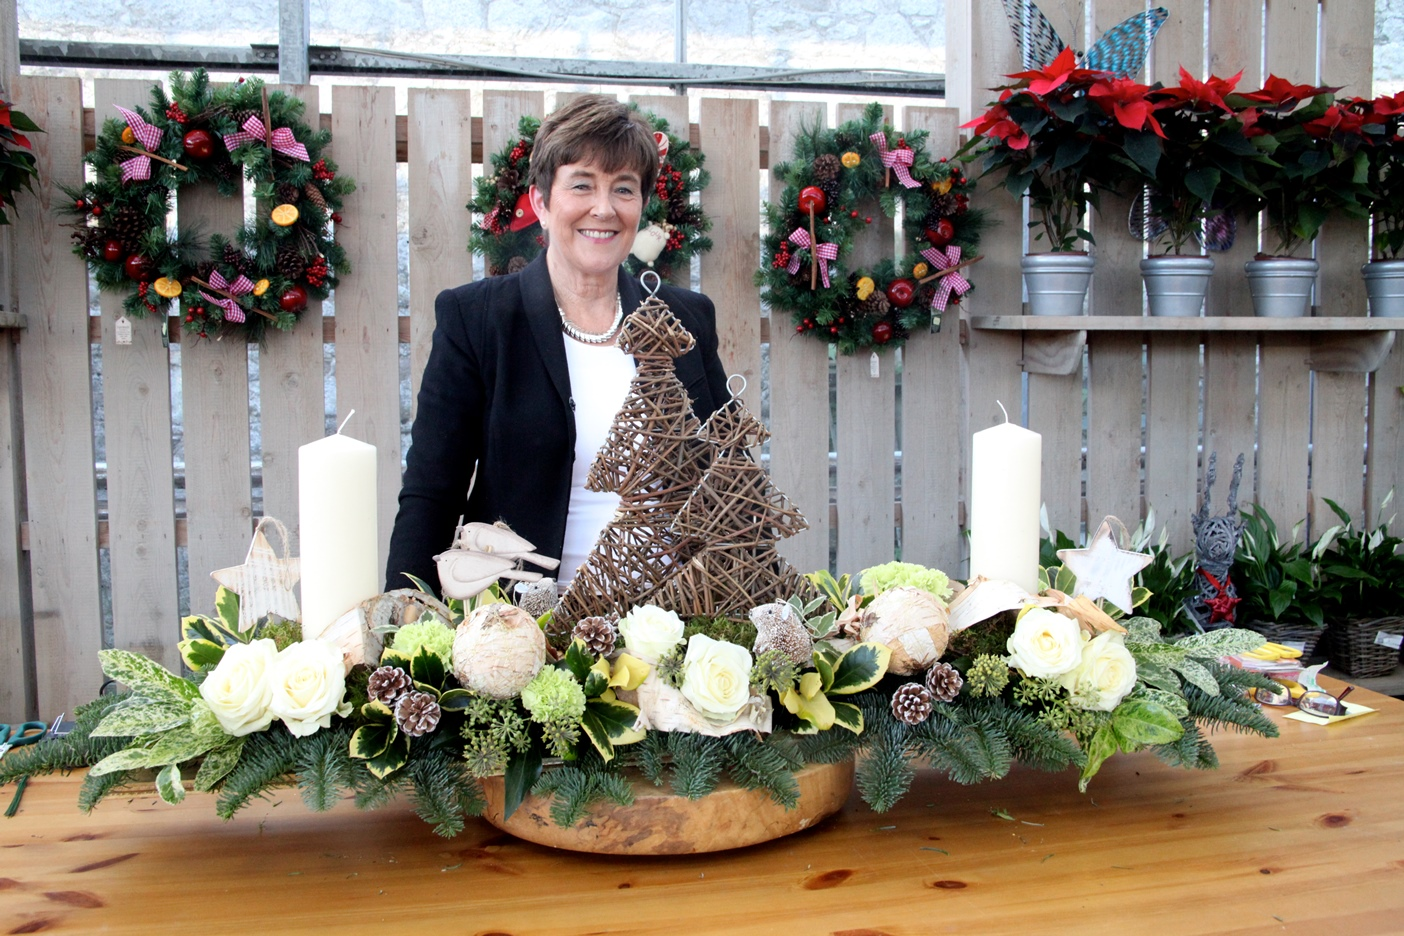 Diy Christmas Floral Art With Carol Bone At Powerscourt